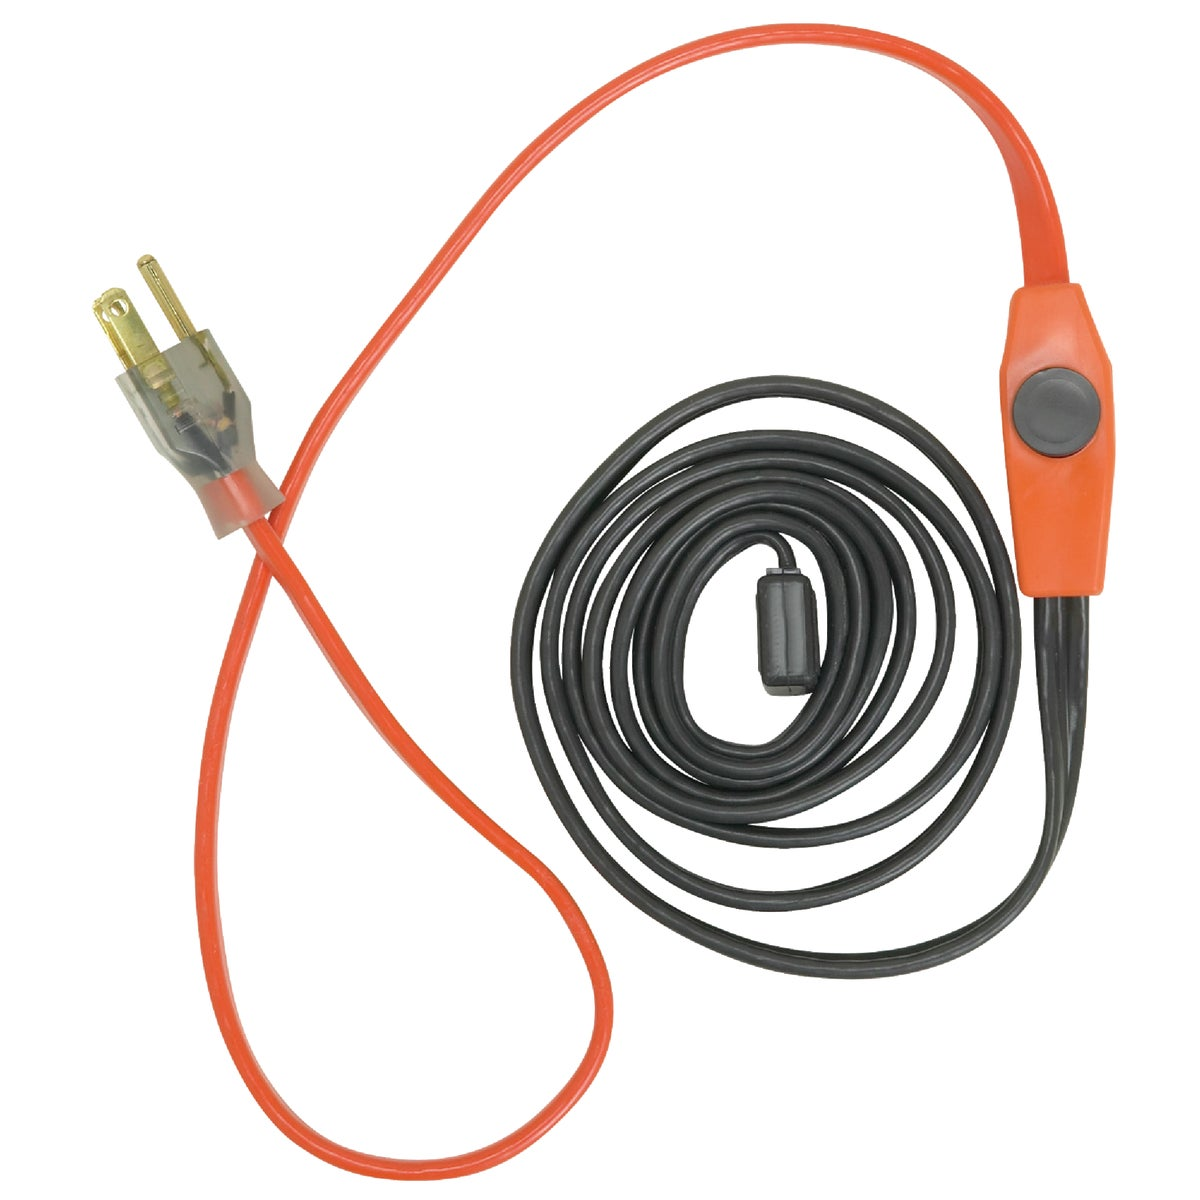 9' PIPE HEATING CABLE - AHB019 by Easy Heat Inc